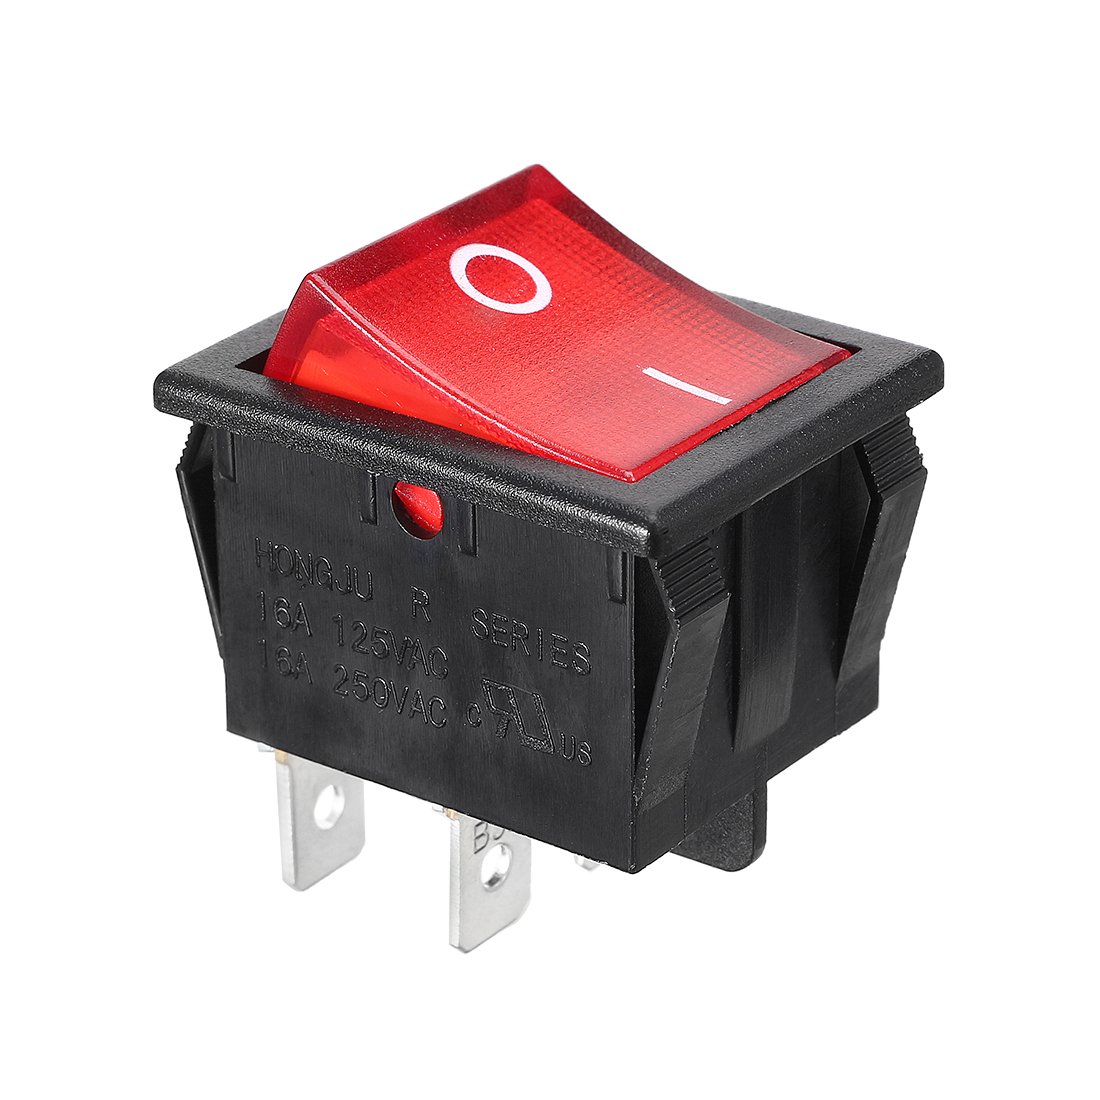 Red Light Illuminated 4 Pin DPST ON/OFF Snap In Rocker Switch 15A 250V AC